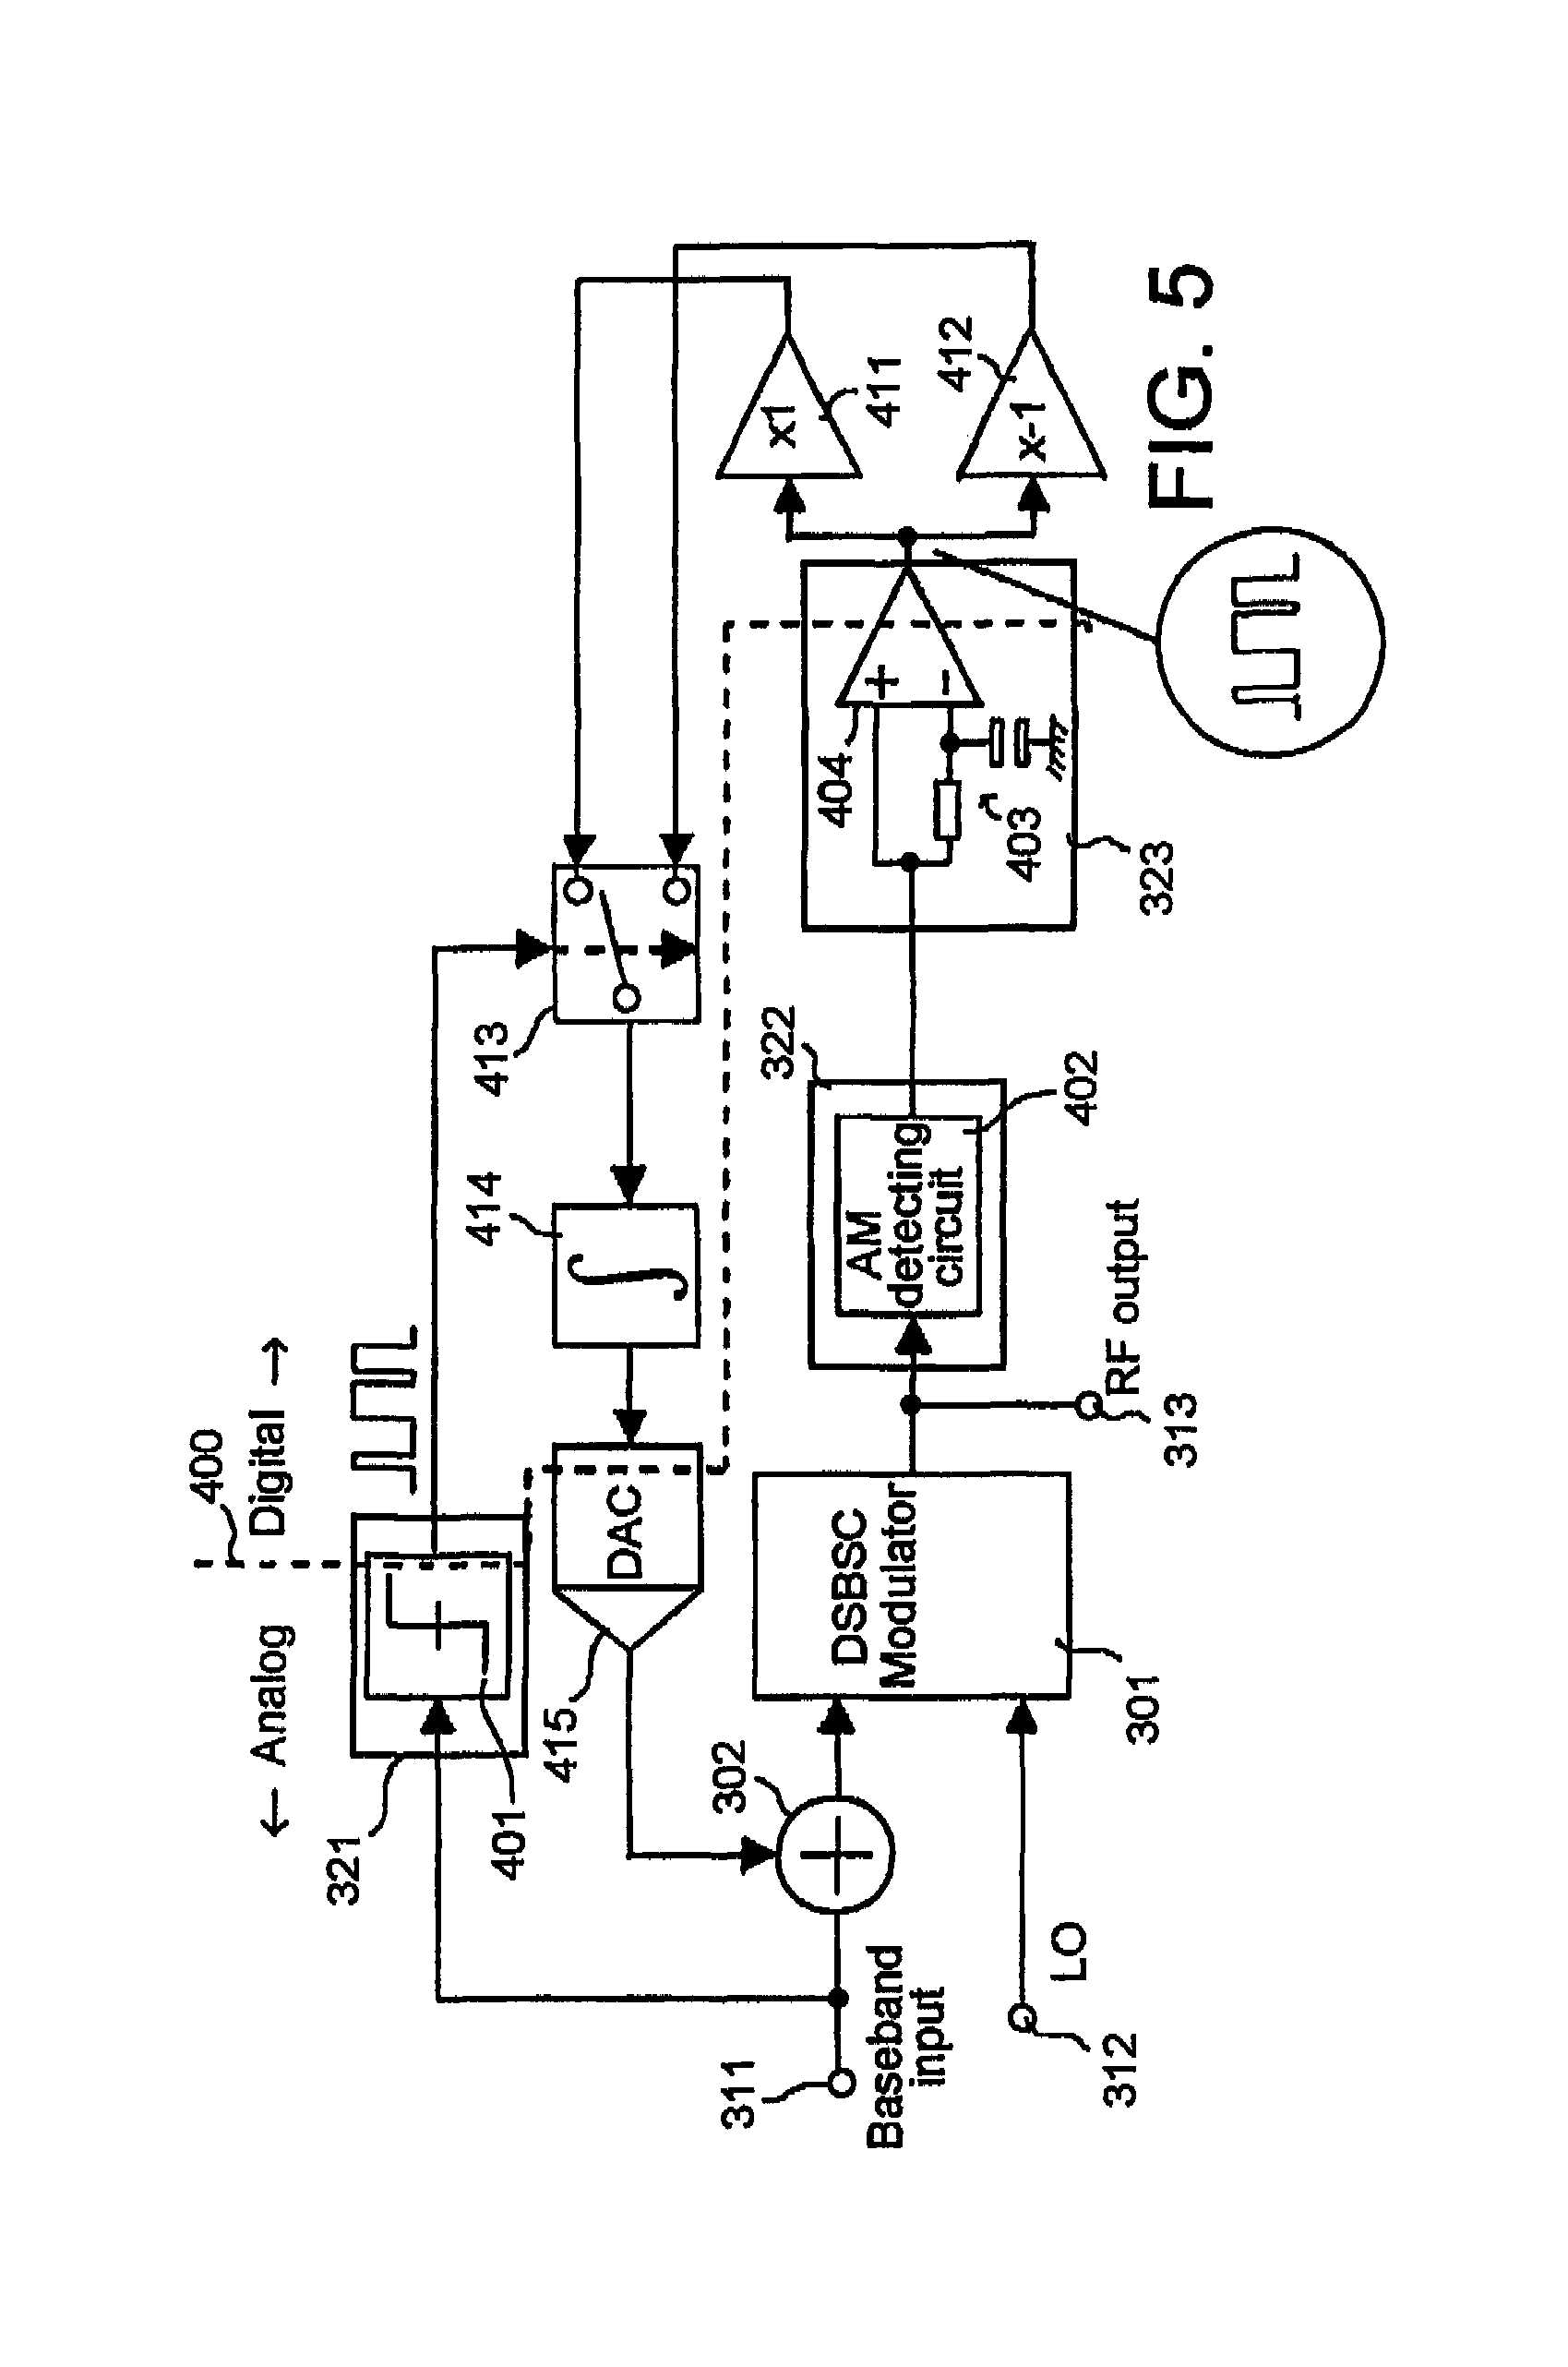 Patent Us7893787 Dc Offset Cancellation Circuit For Modulator Am Drawing